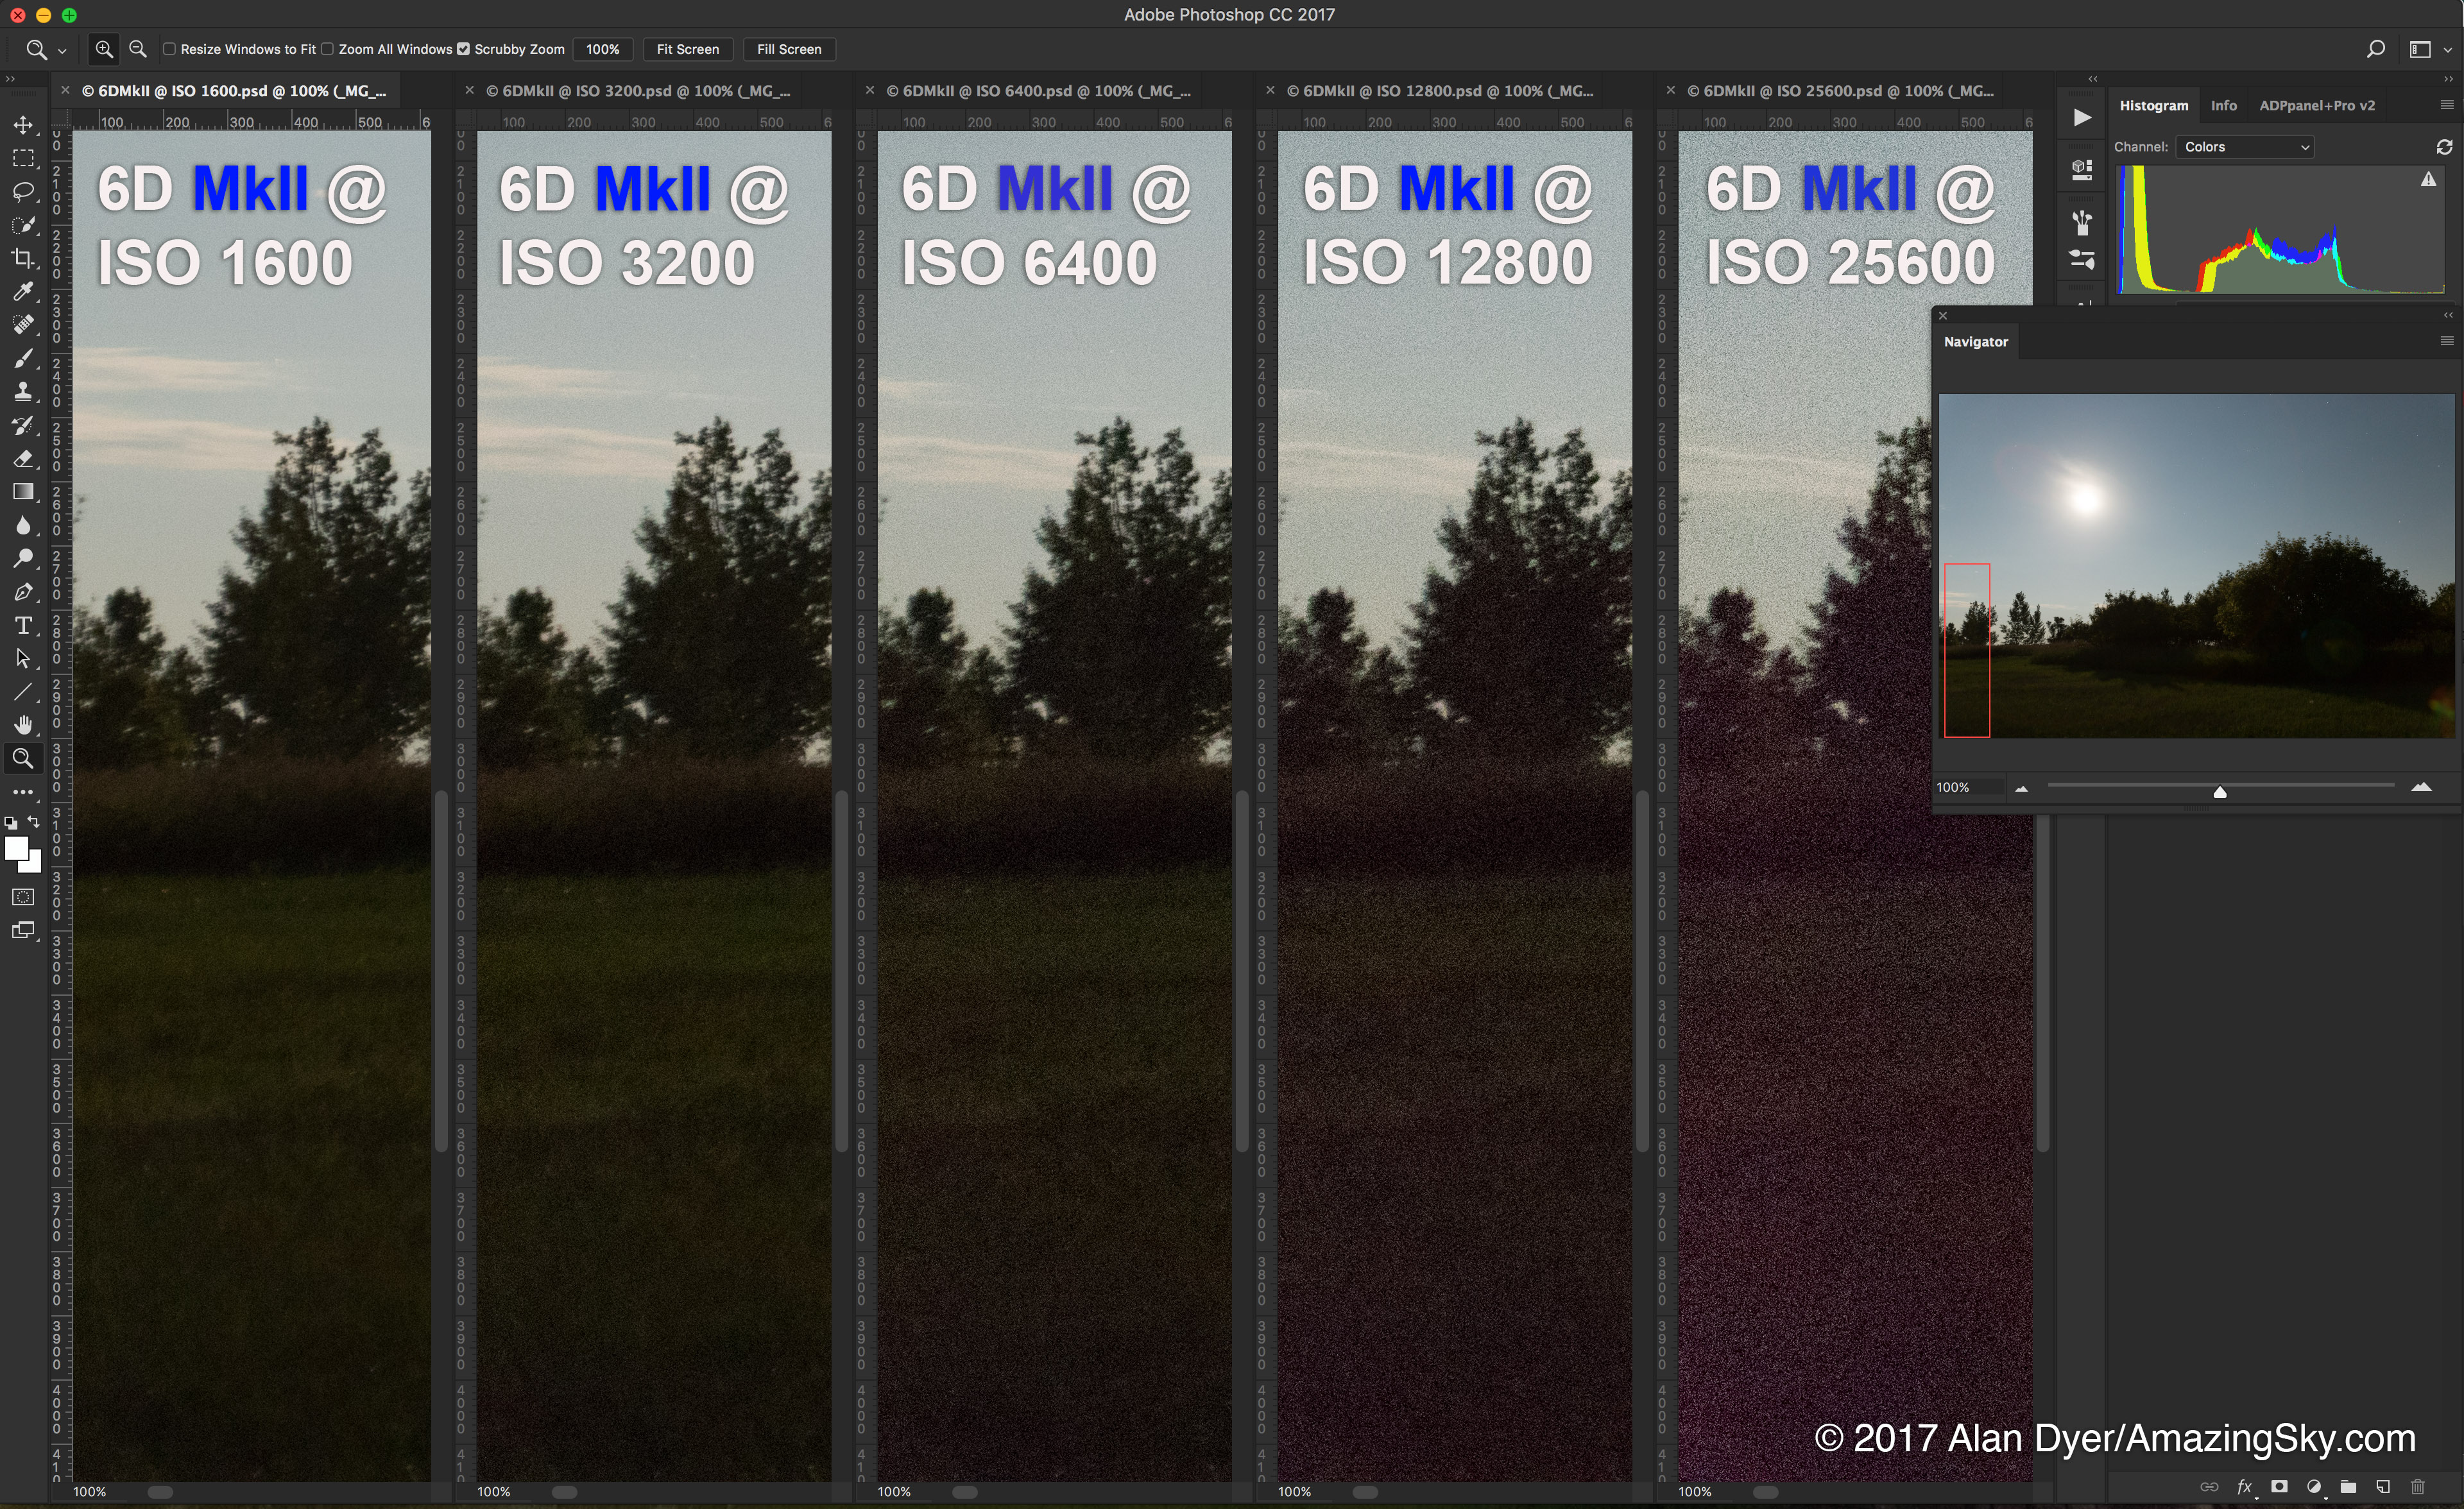 6D MkII Noise at 5 ISOs